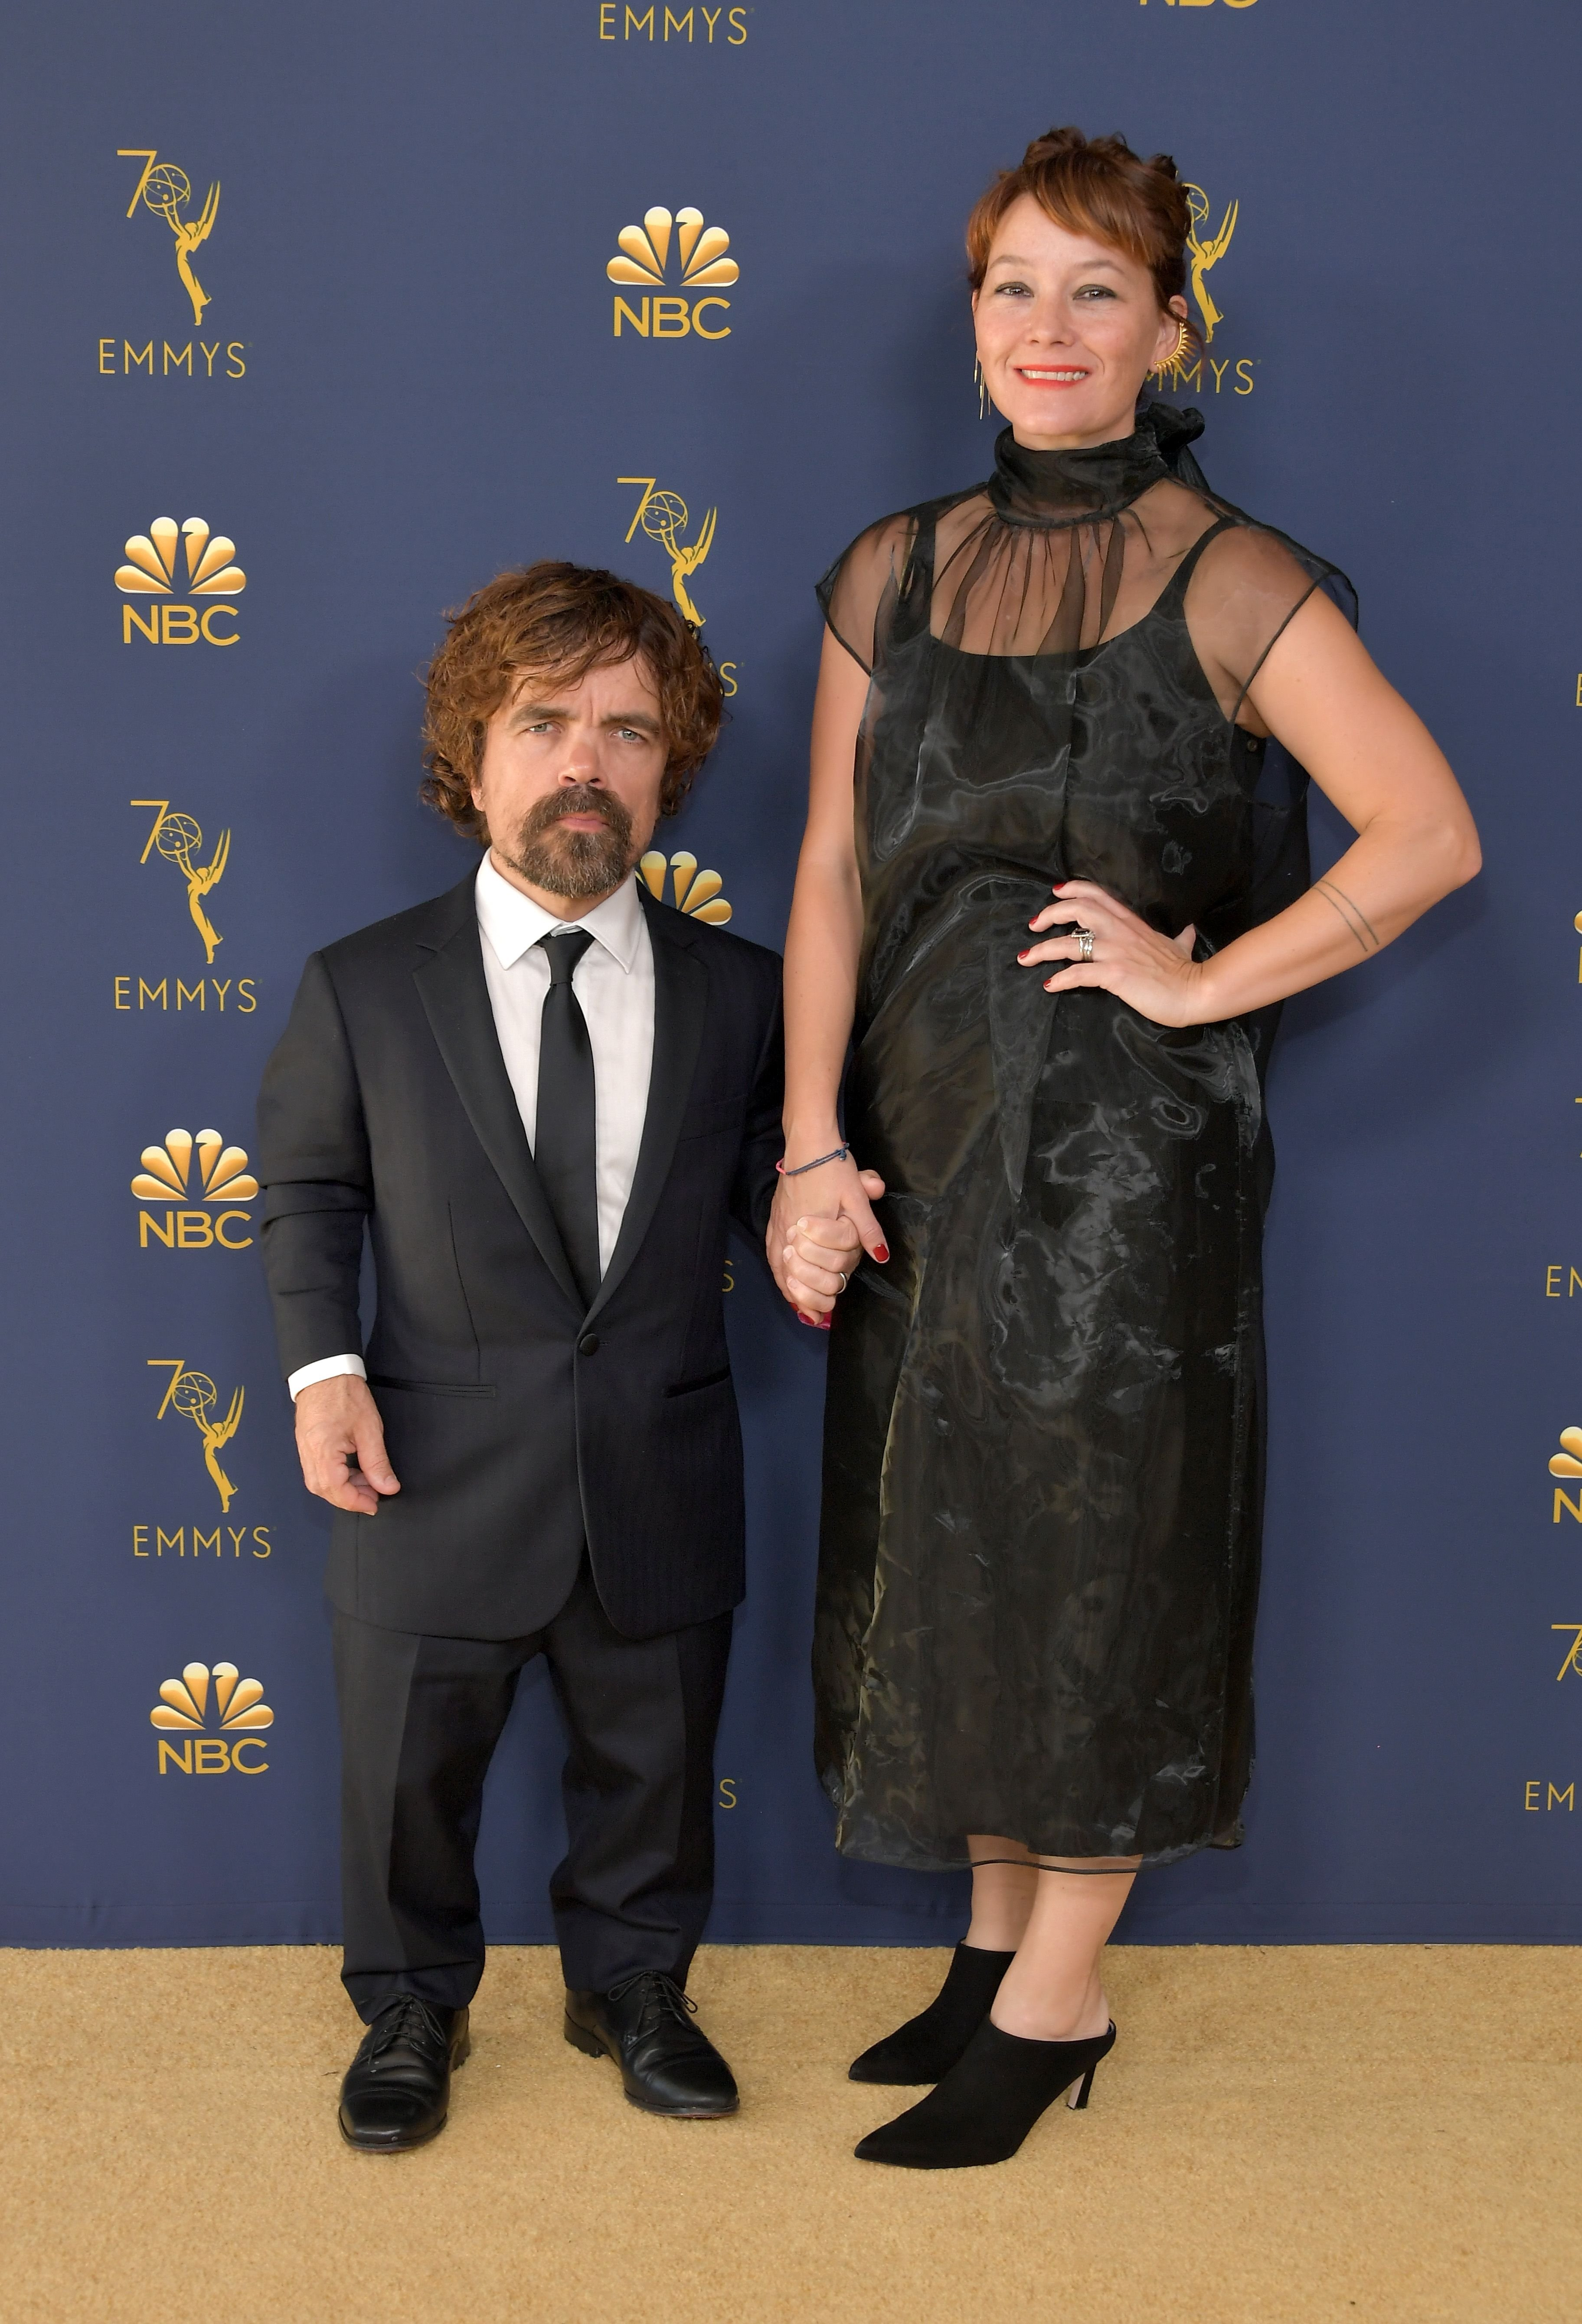 Peter Dinklage and Erica Schmidt at the 70th Emmy Awards in 2018 in Los Angeles, California | Source: Getty Images